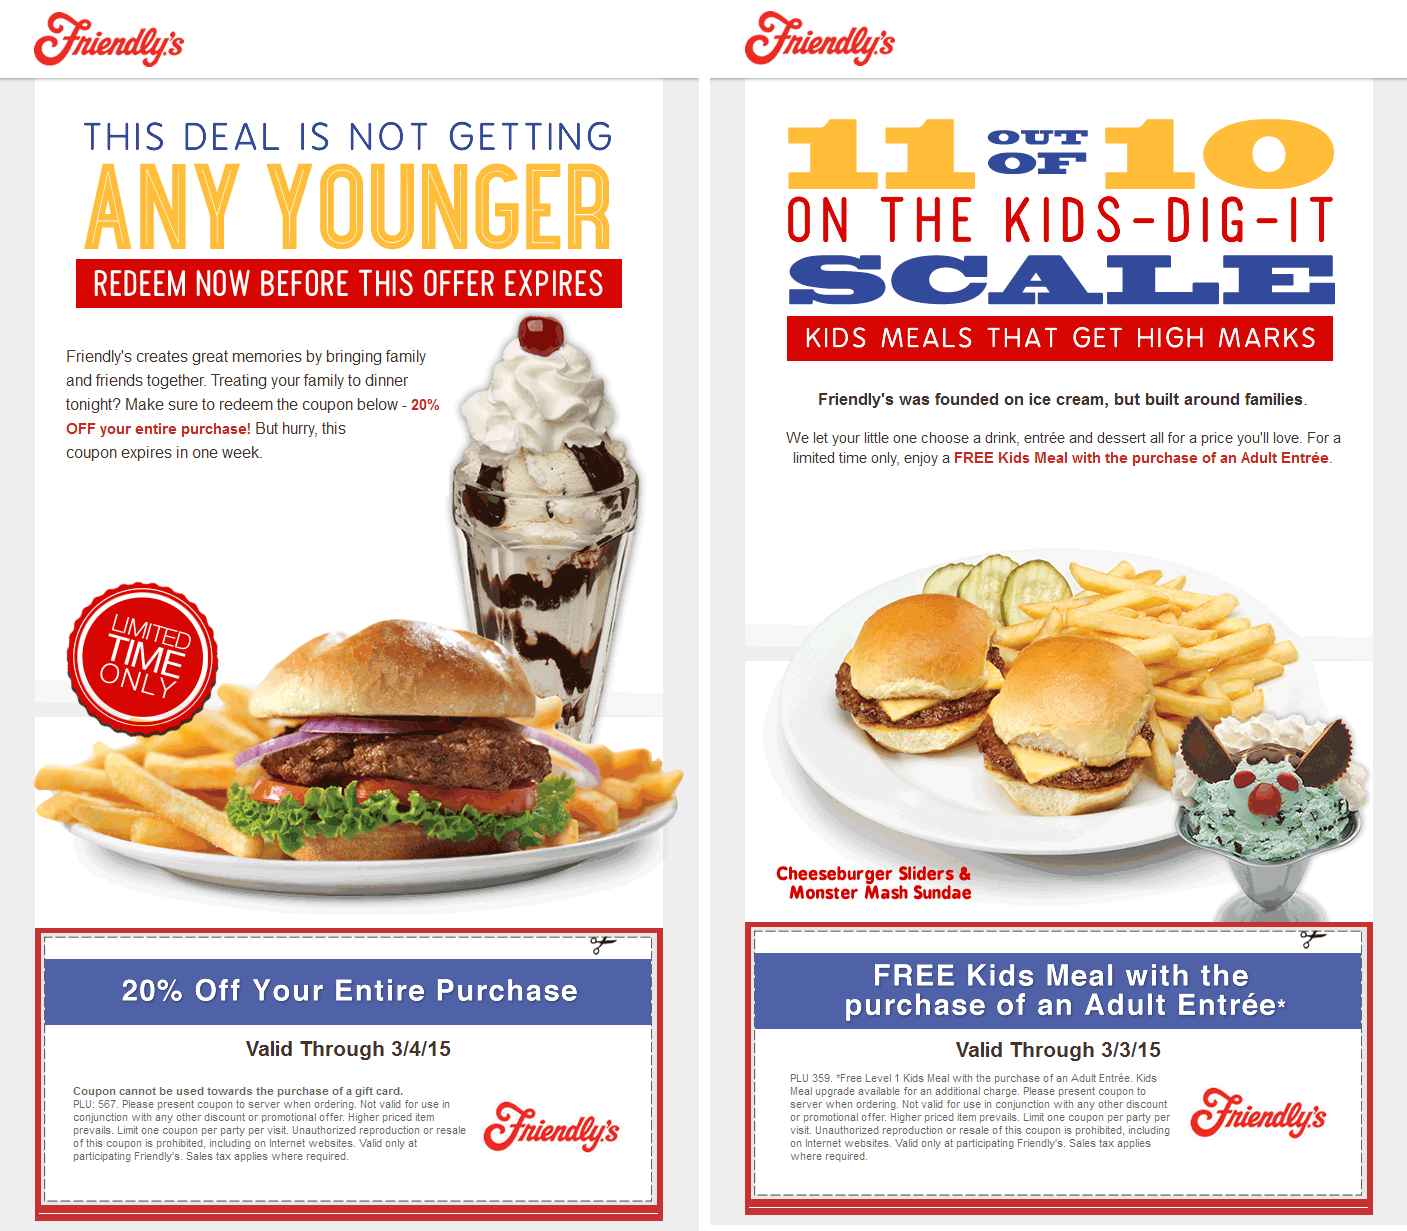 Friendlys Coupon October 2017 20% off & more at Friendlys restaurants